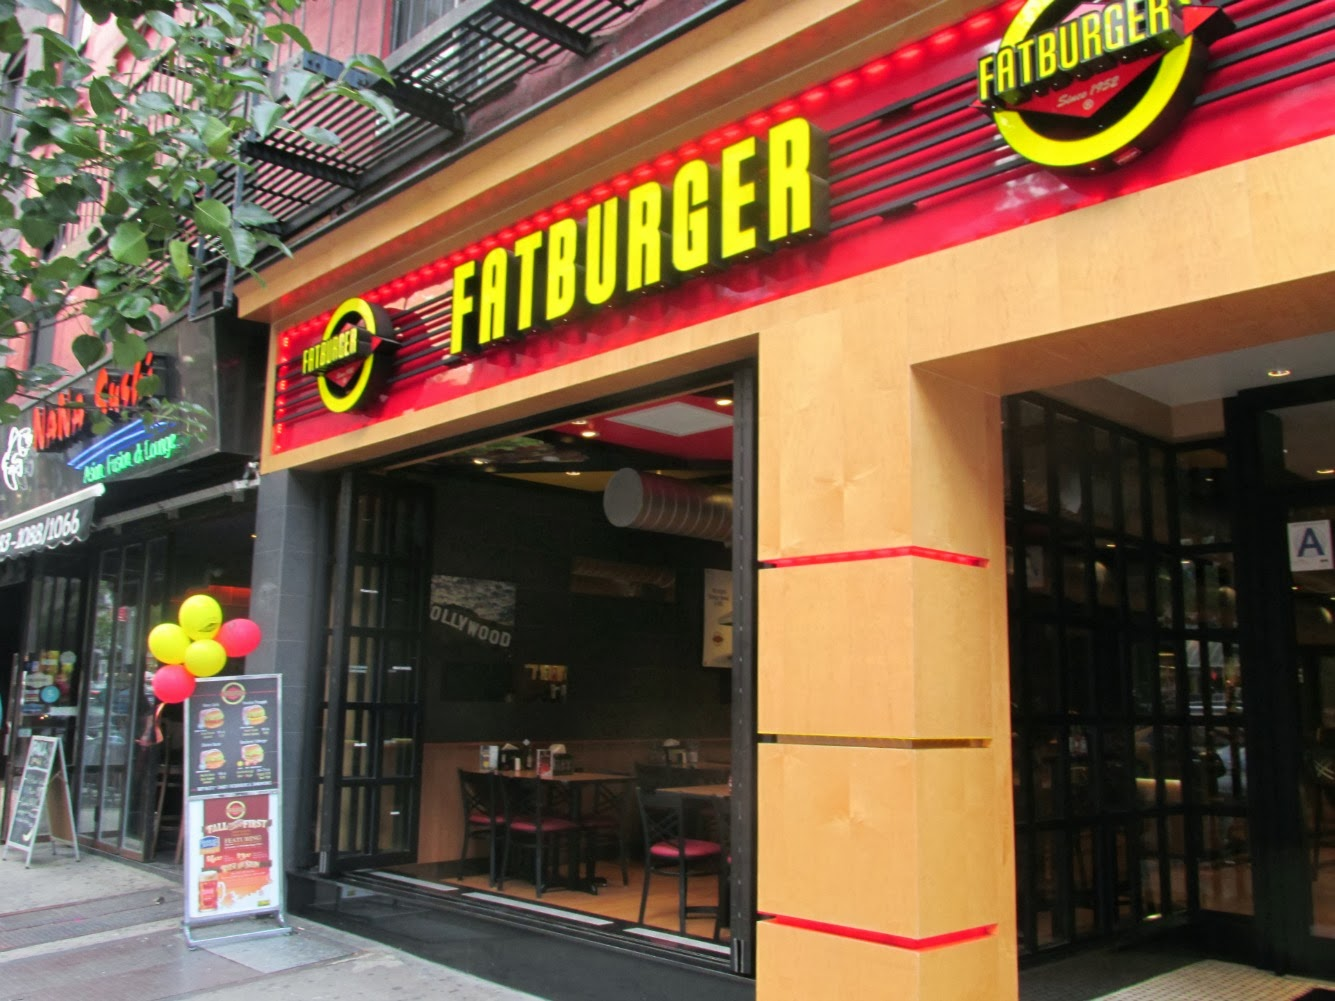 Los Angeles sensation Fatburger is angling to be the next hot burger chain to go public — but investors might not be able to stomach what they see when they read the fine print. On Thursday.